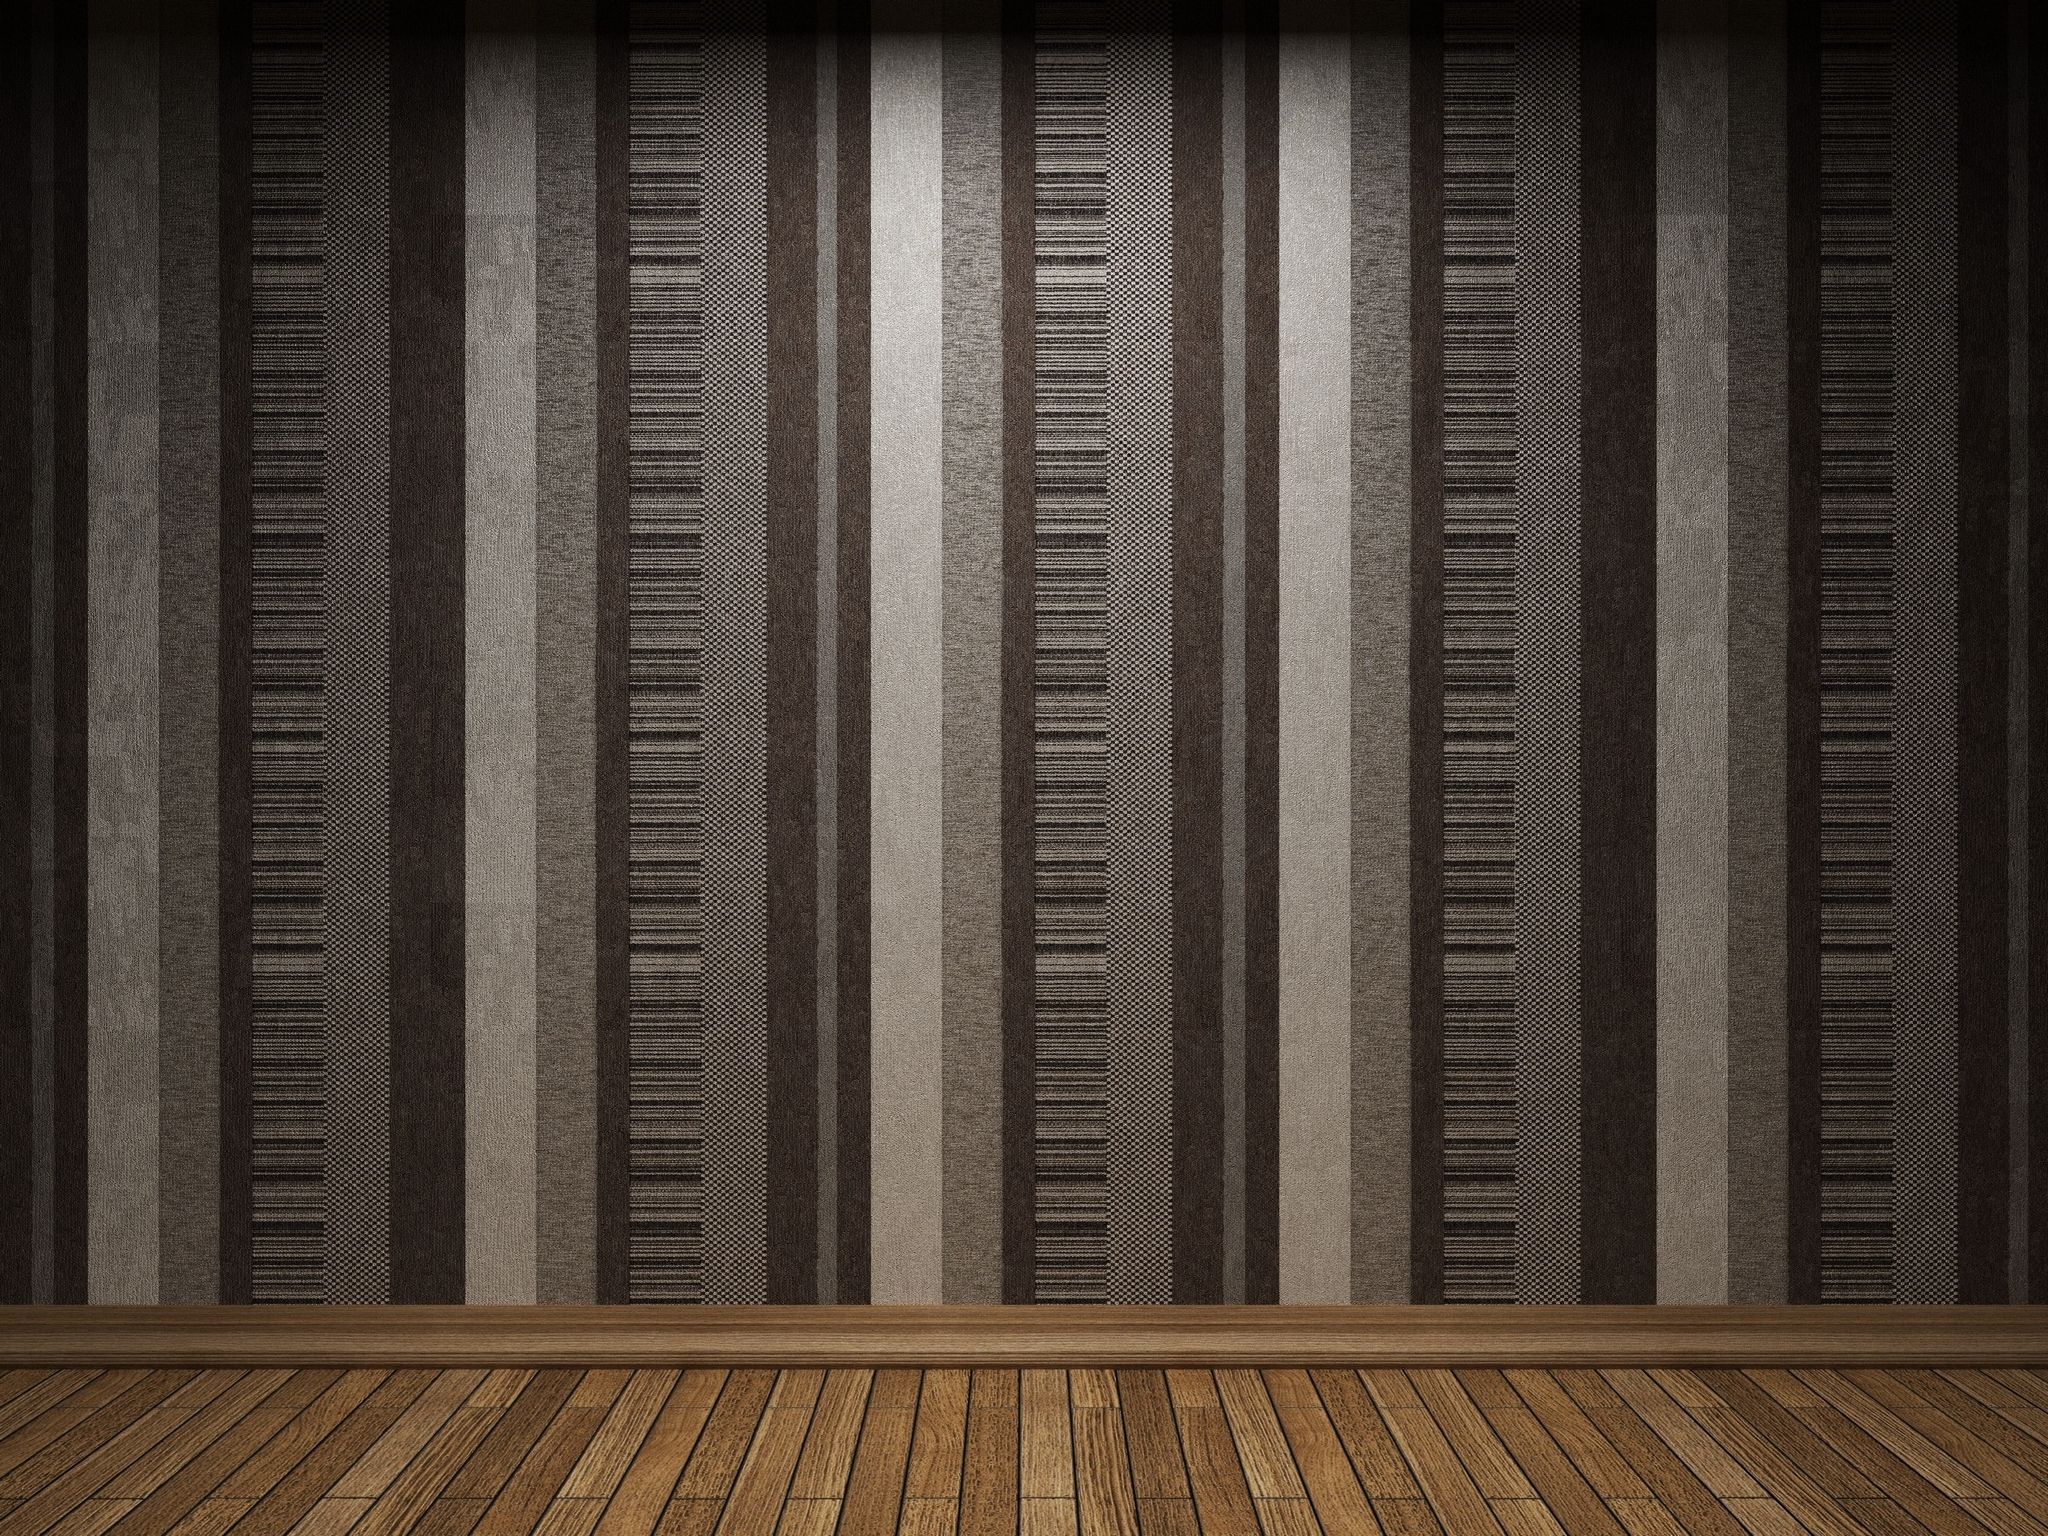 Designs images Elegant wall design HD wallpaper and